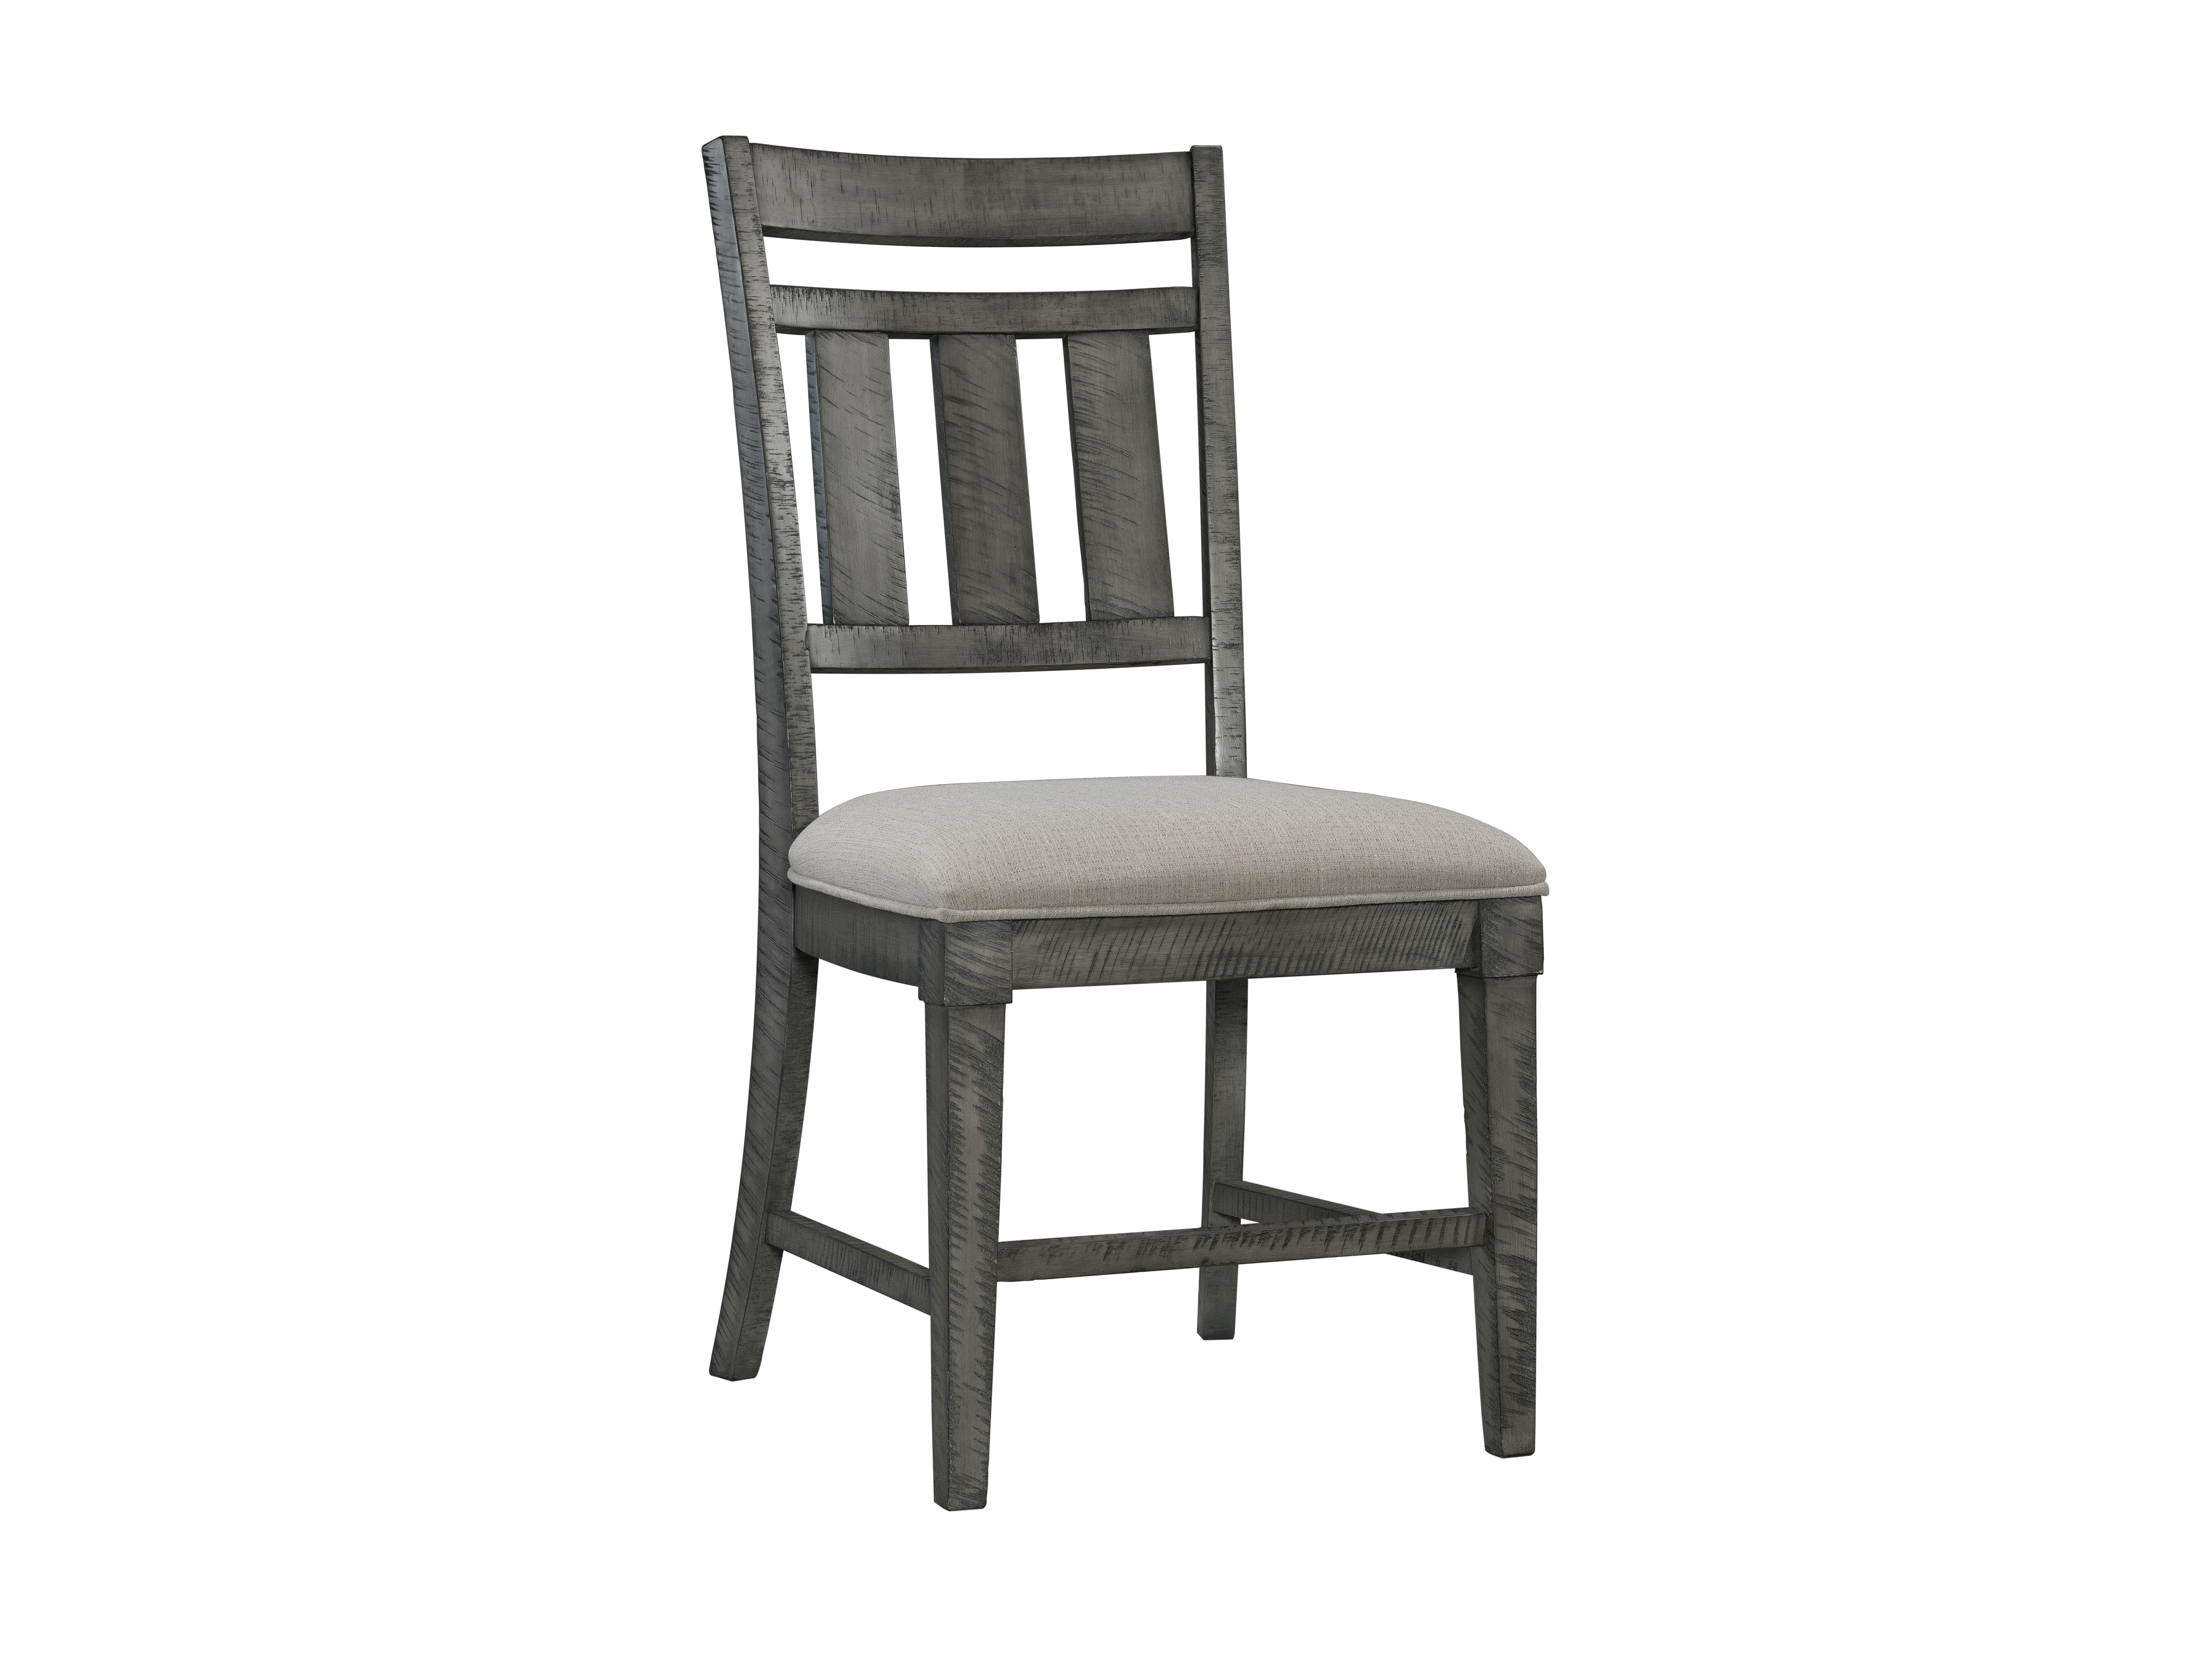 Stupendous 2 Lane Furniture Old Forge Grey Dining Chairs Gmtry Best Dining Table And Chair Ideas Images Gmtryco